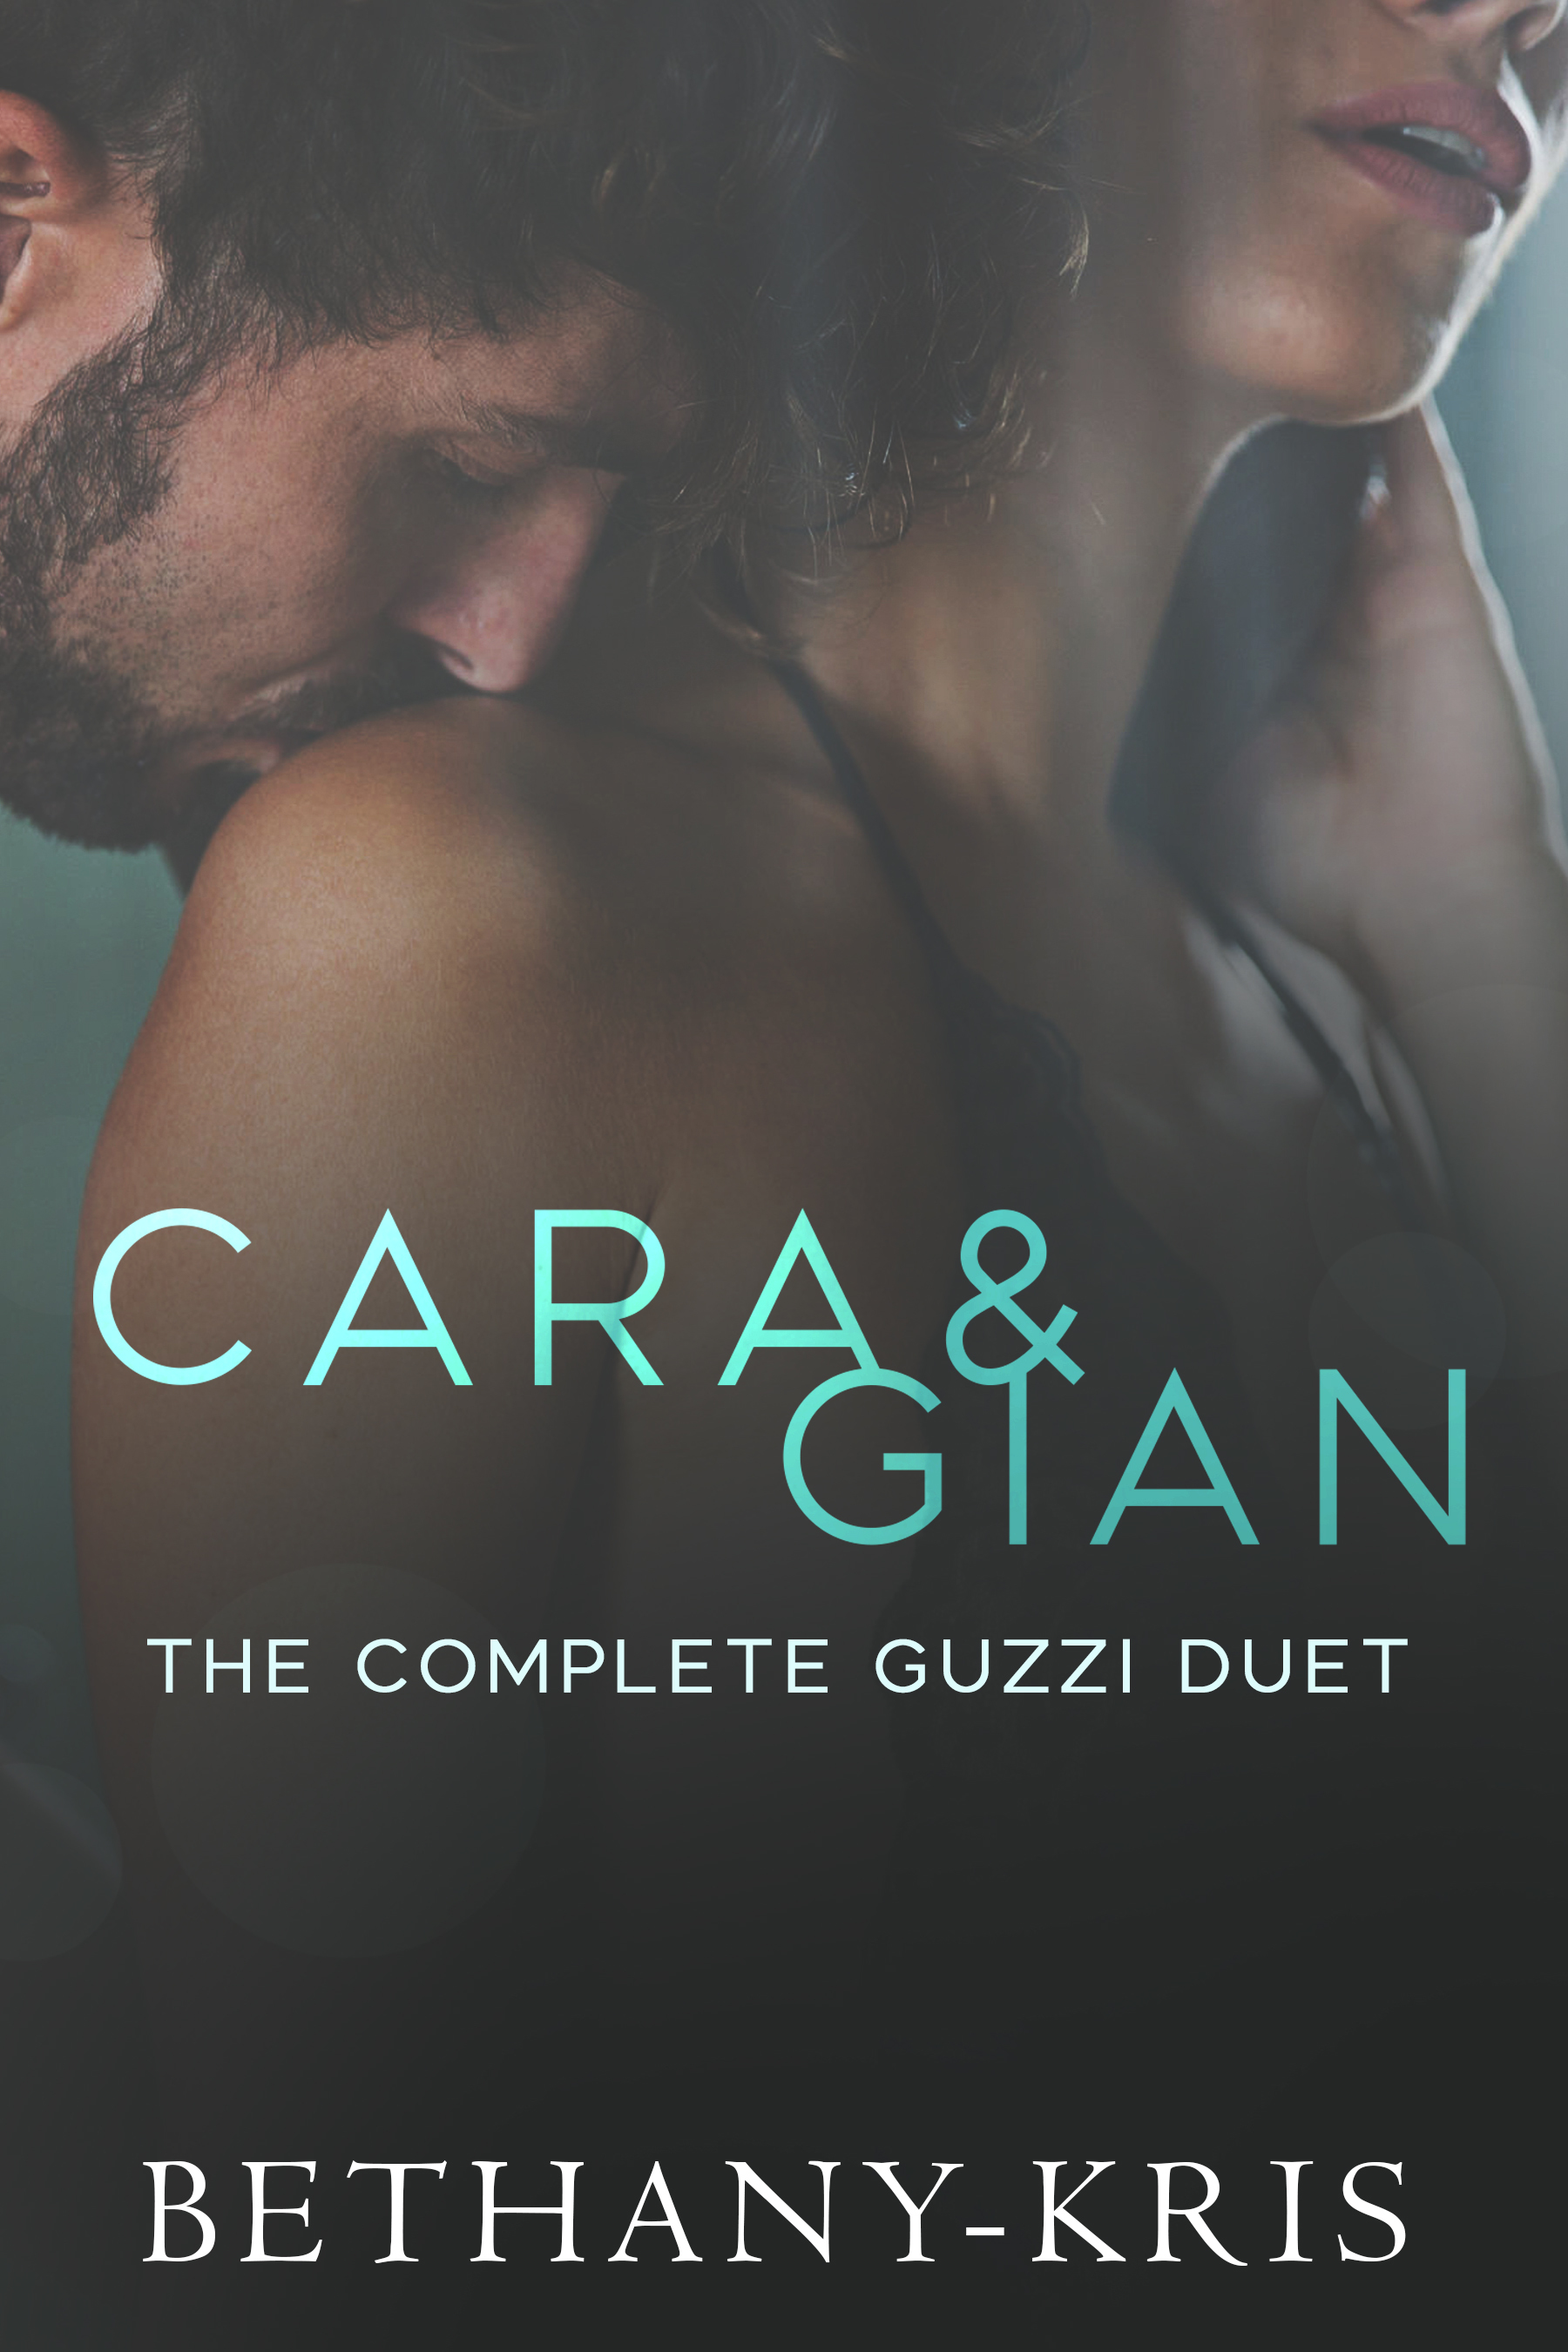 Bethany-Kris - Cara & Gian The Complete Guzzi Duet